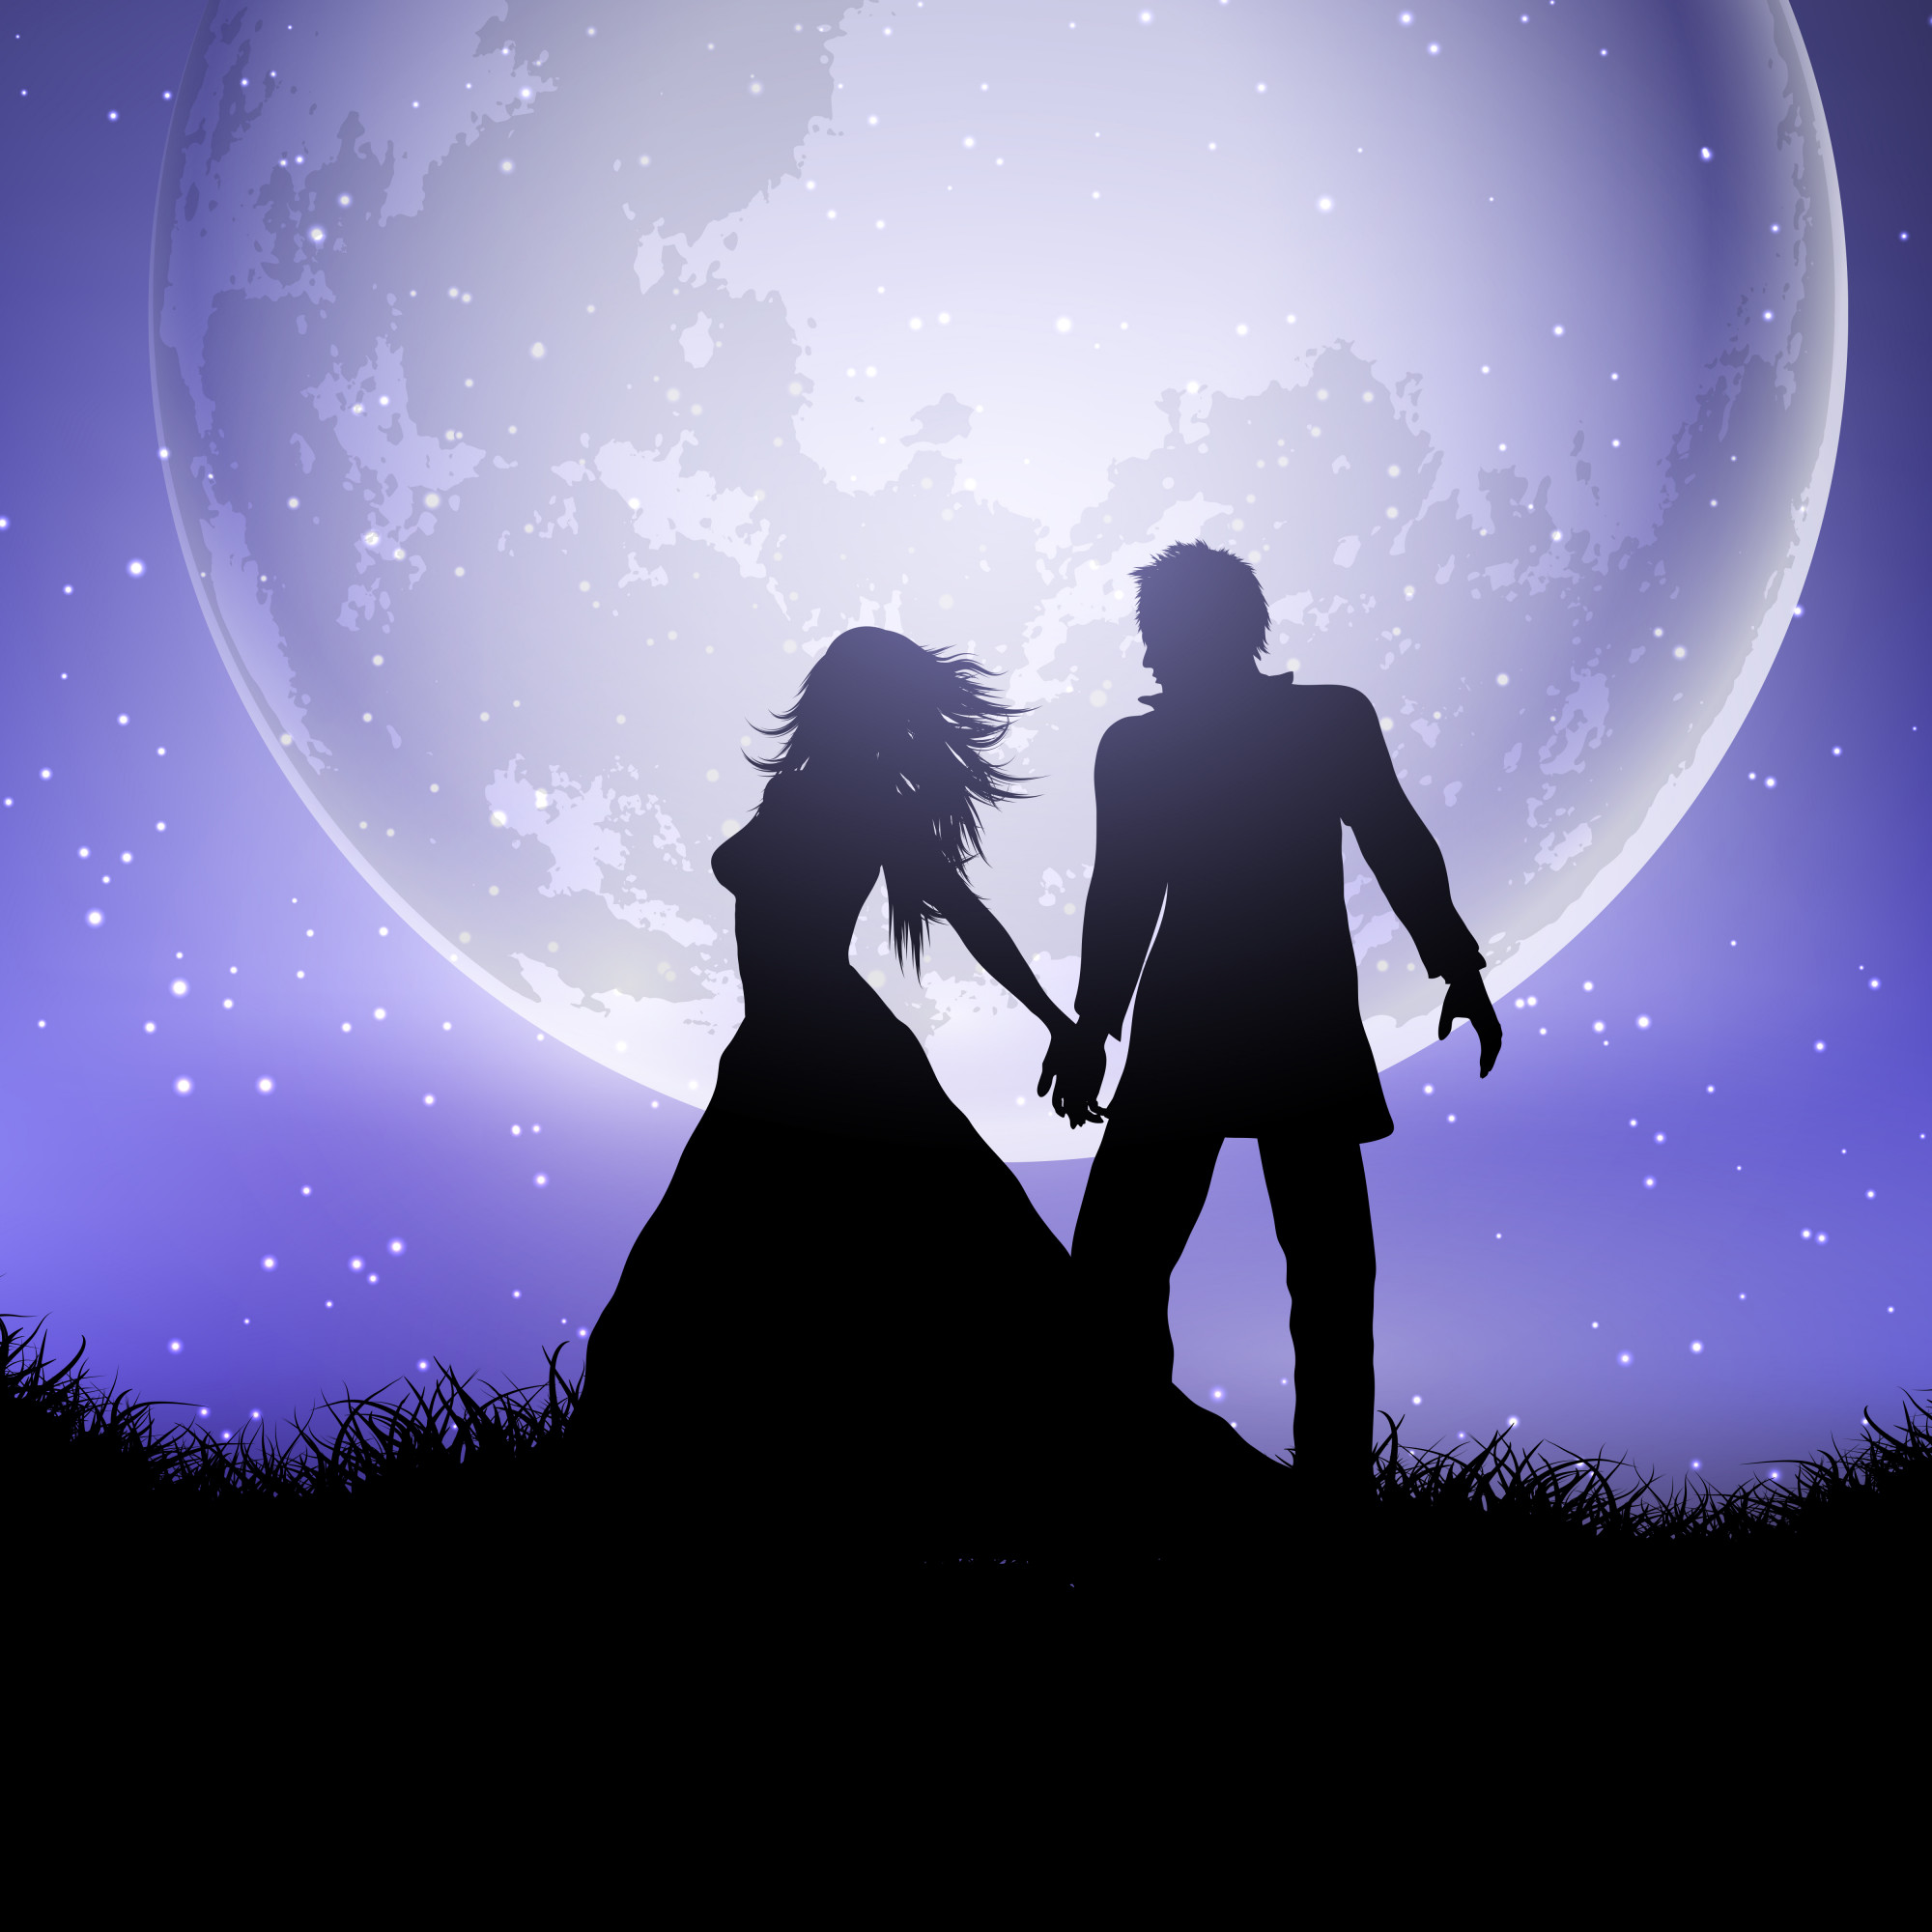 Silhouette of wedding couple against a moonlit sky